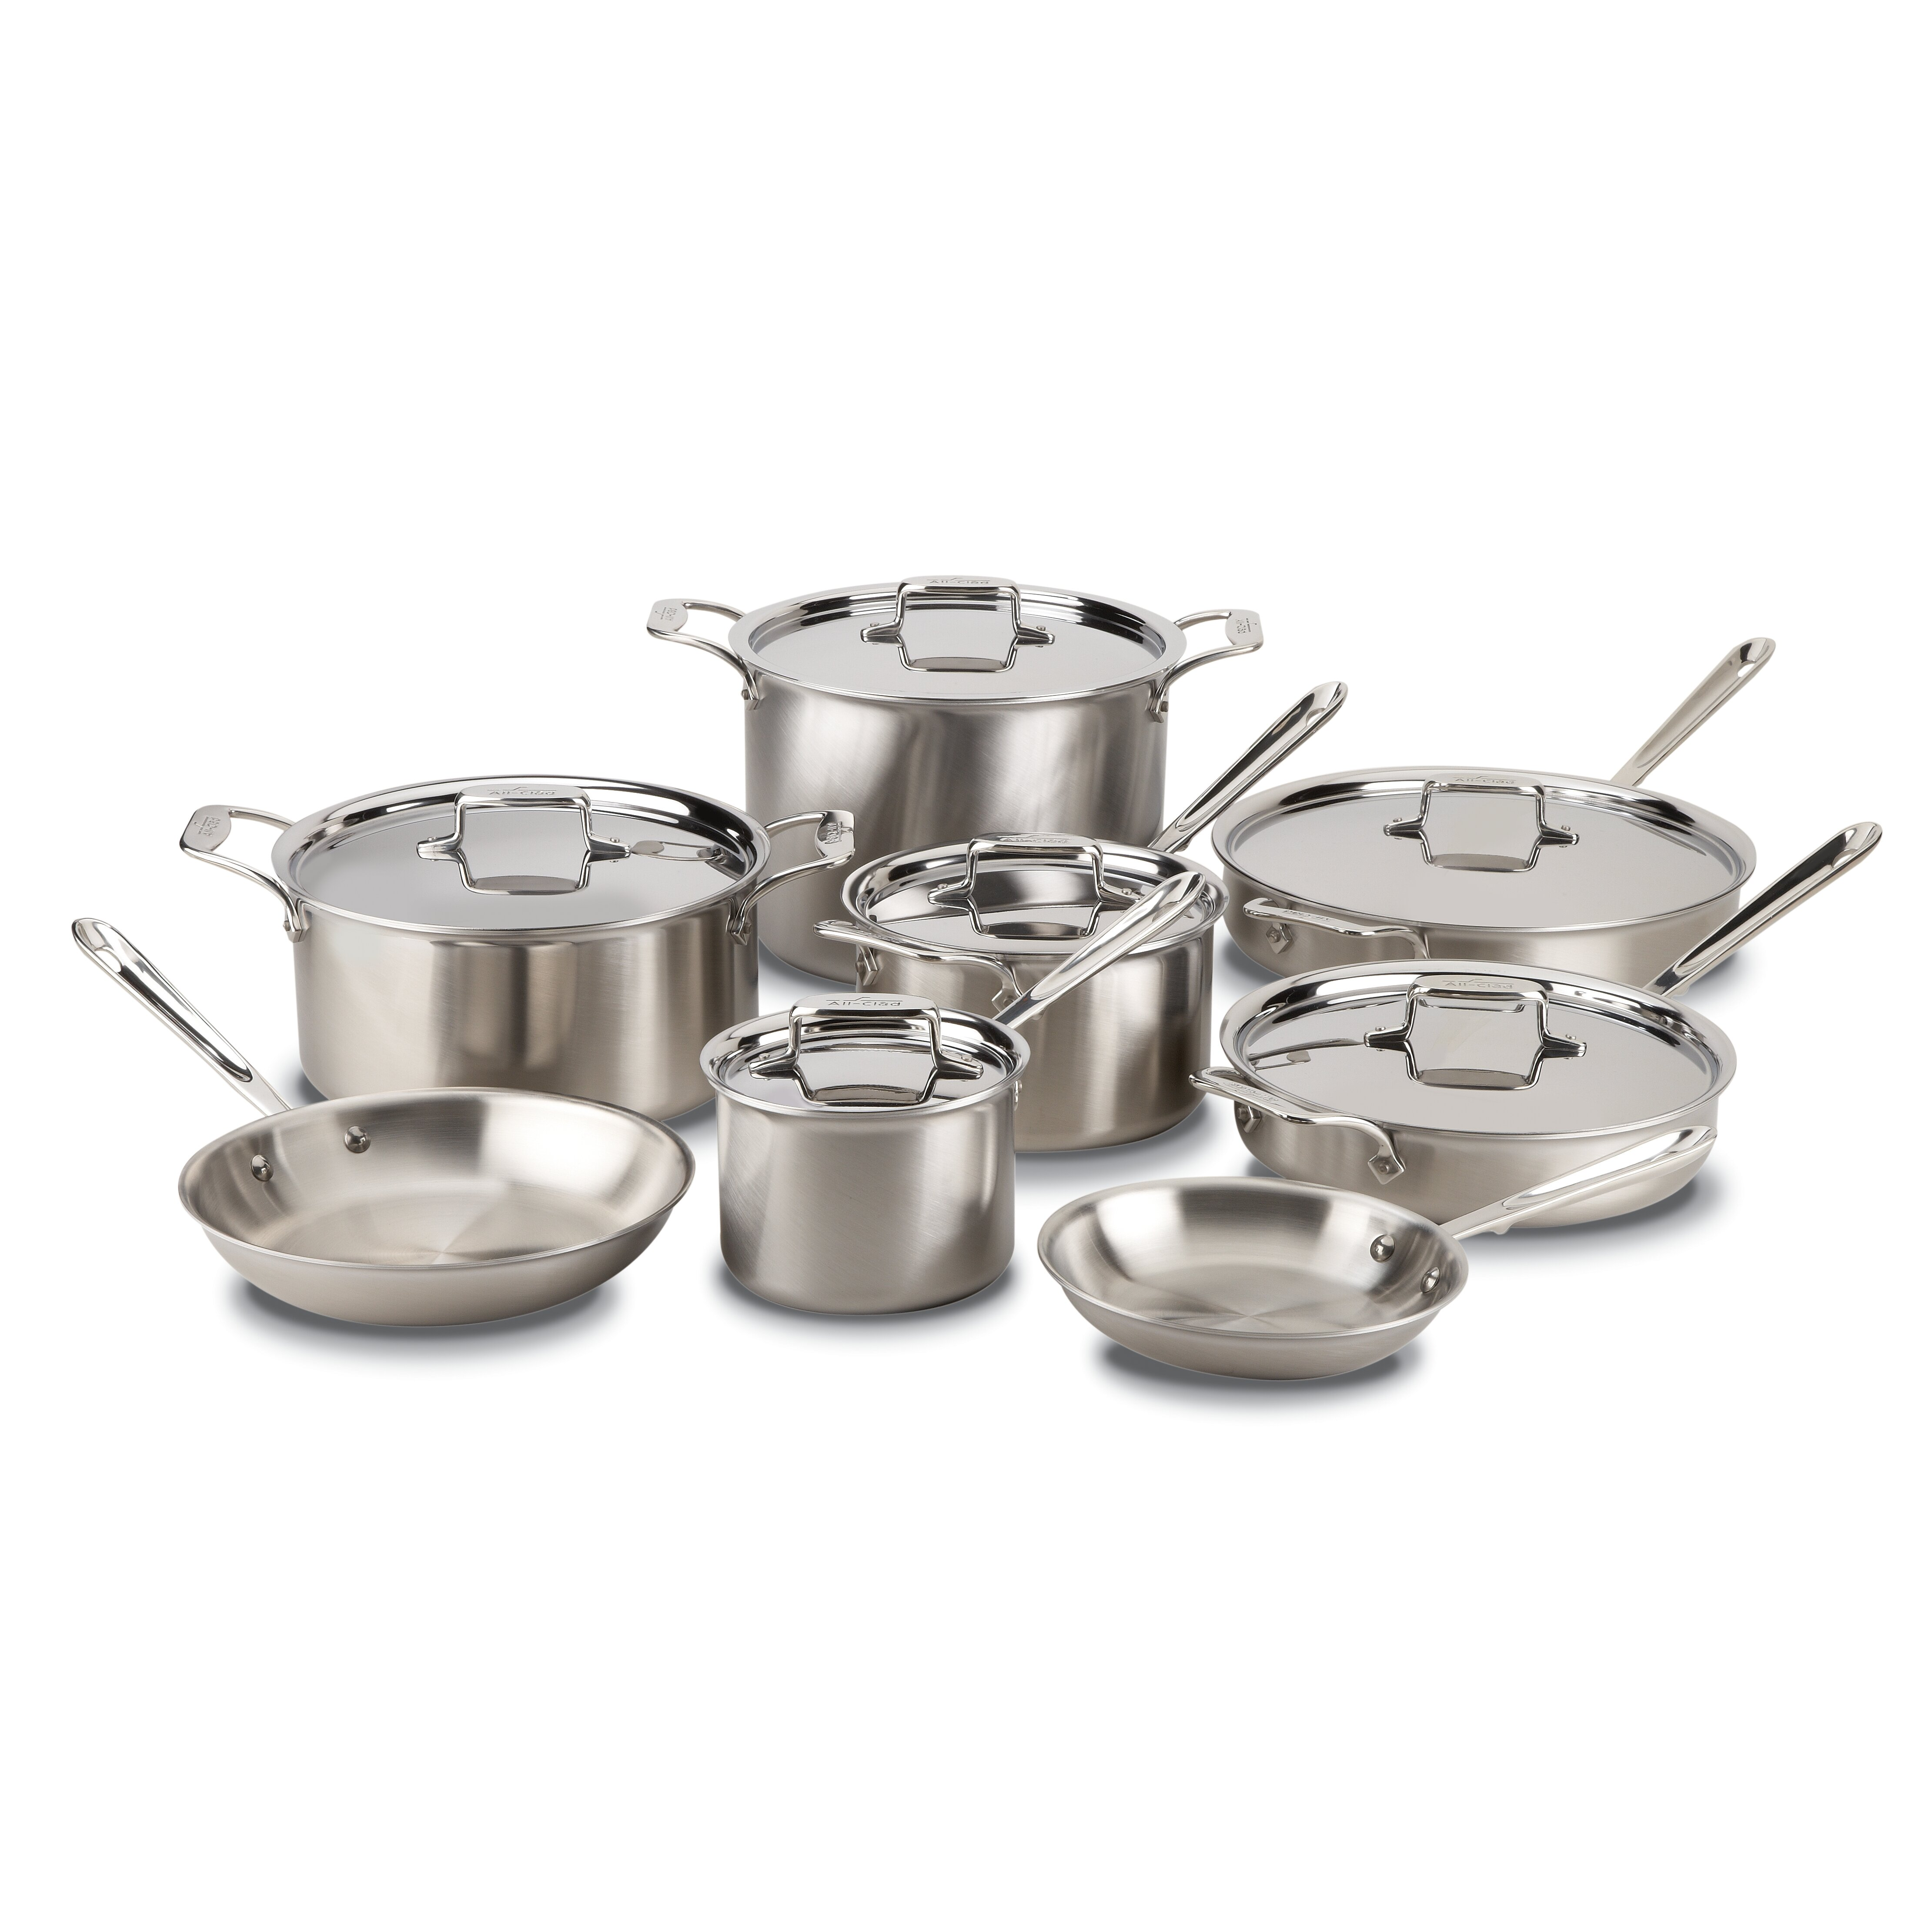 All clad stainless steel cookware sets - All Clad Brushed Stainless Steel 14 Piece Cookware Set